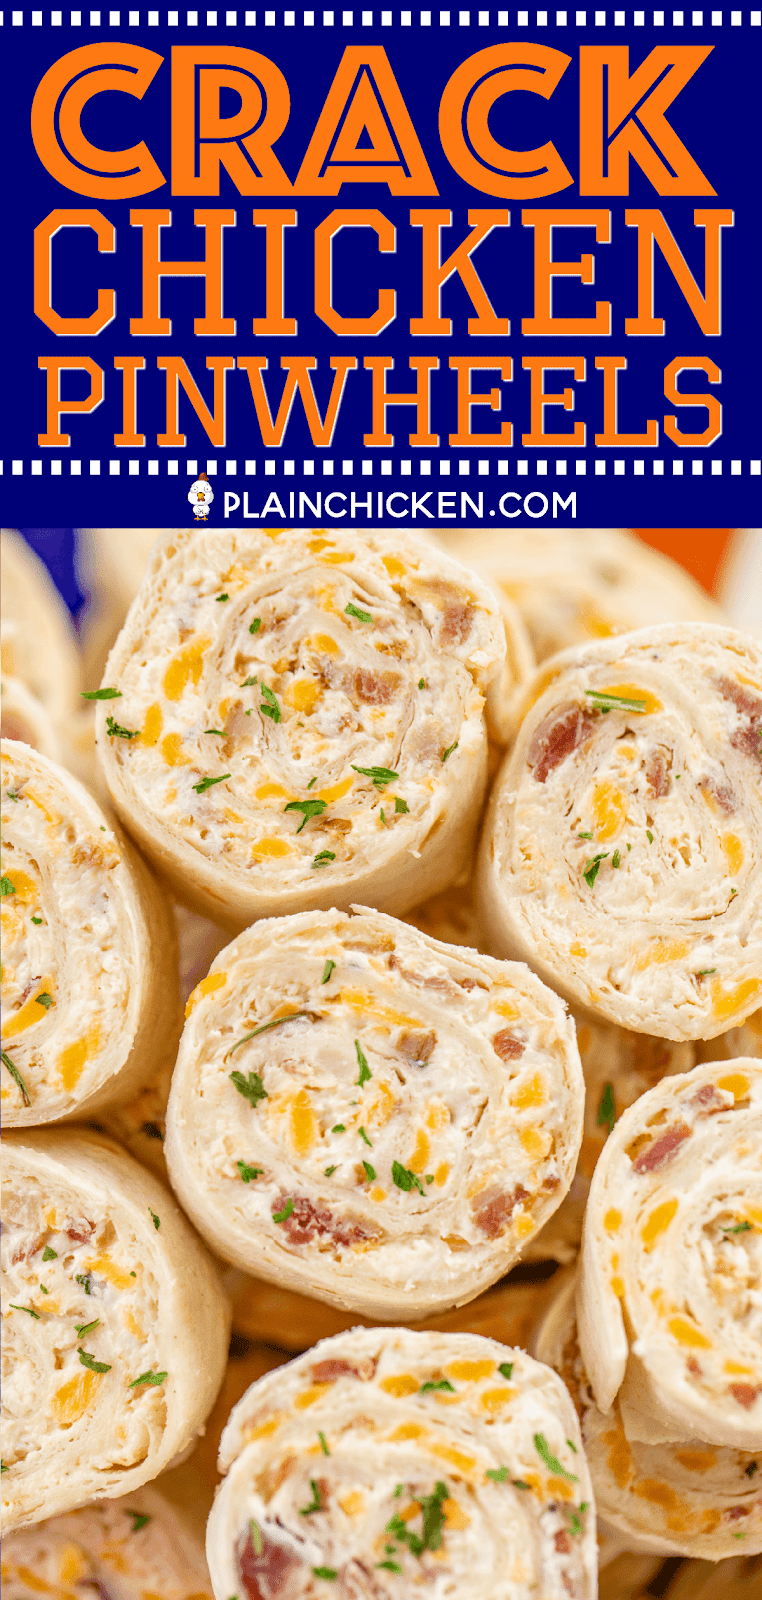 Crack Chicken Pinwheels - I am ADDICTED to these sandwiches! Cream cheese, cheddar, bacon, ranch and chicken wrapped in a tortilla. So simple to make with rotisserie chicken and precooked bacon. Can make ahead of time and refrigerate until ready to eat. Perfect for parties and tailgating!! #pinwheels #chicken #tailgating #bacon #sandwich #partyfood